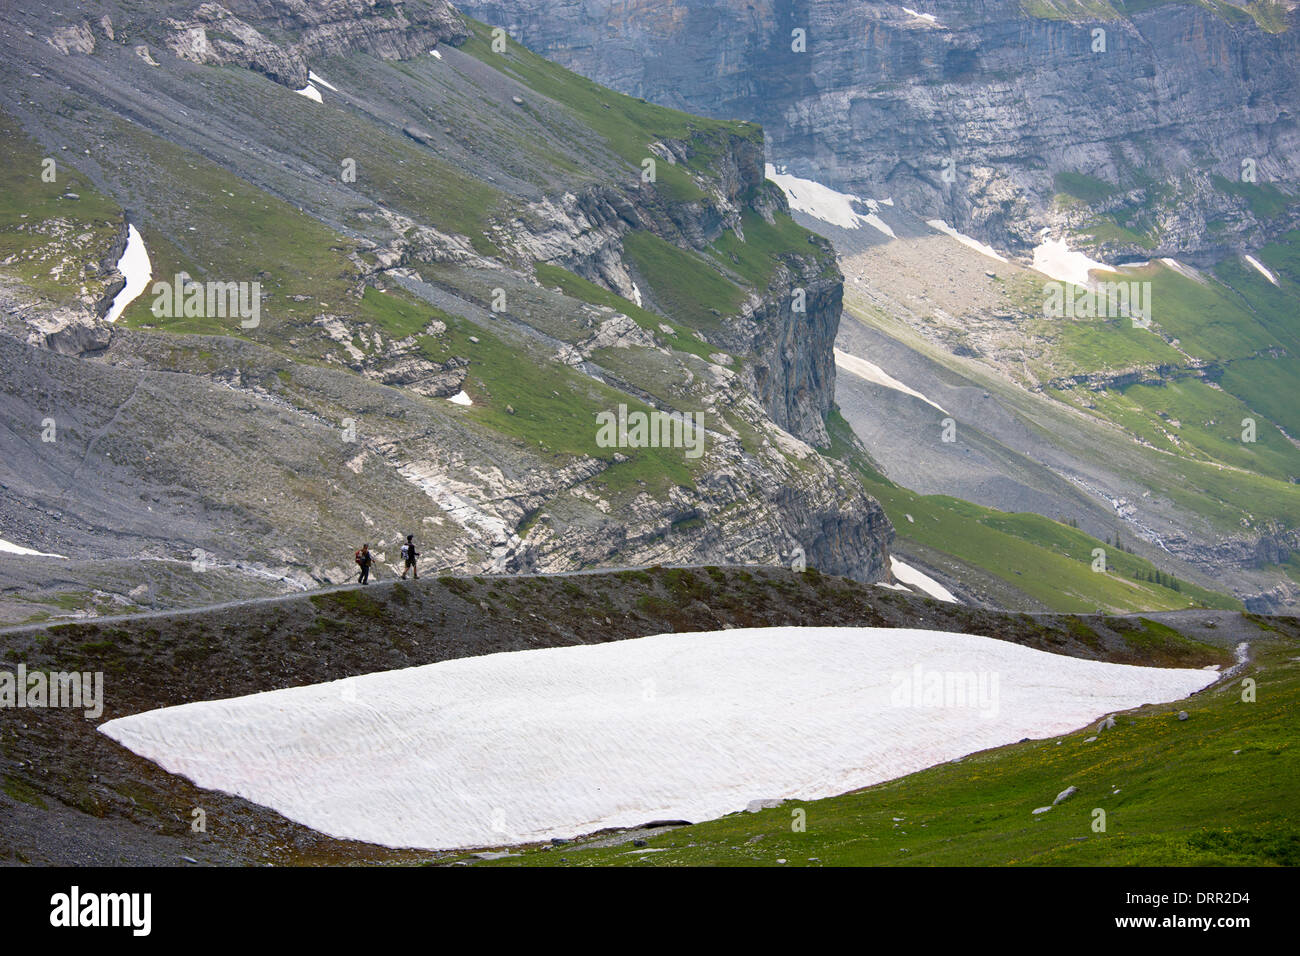 Hikers on the Eiger Trail in Swiss Alps, Bernese Oberland, Switzerland - Stock Image